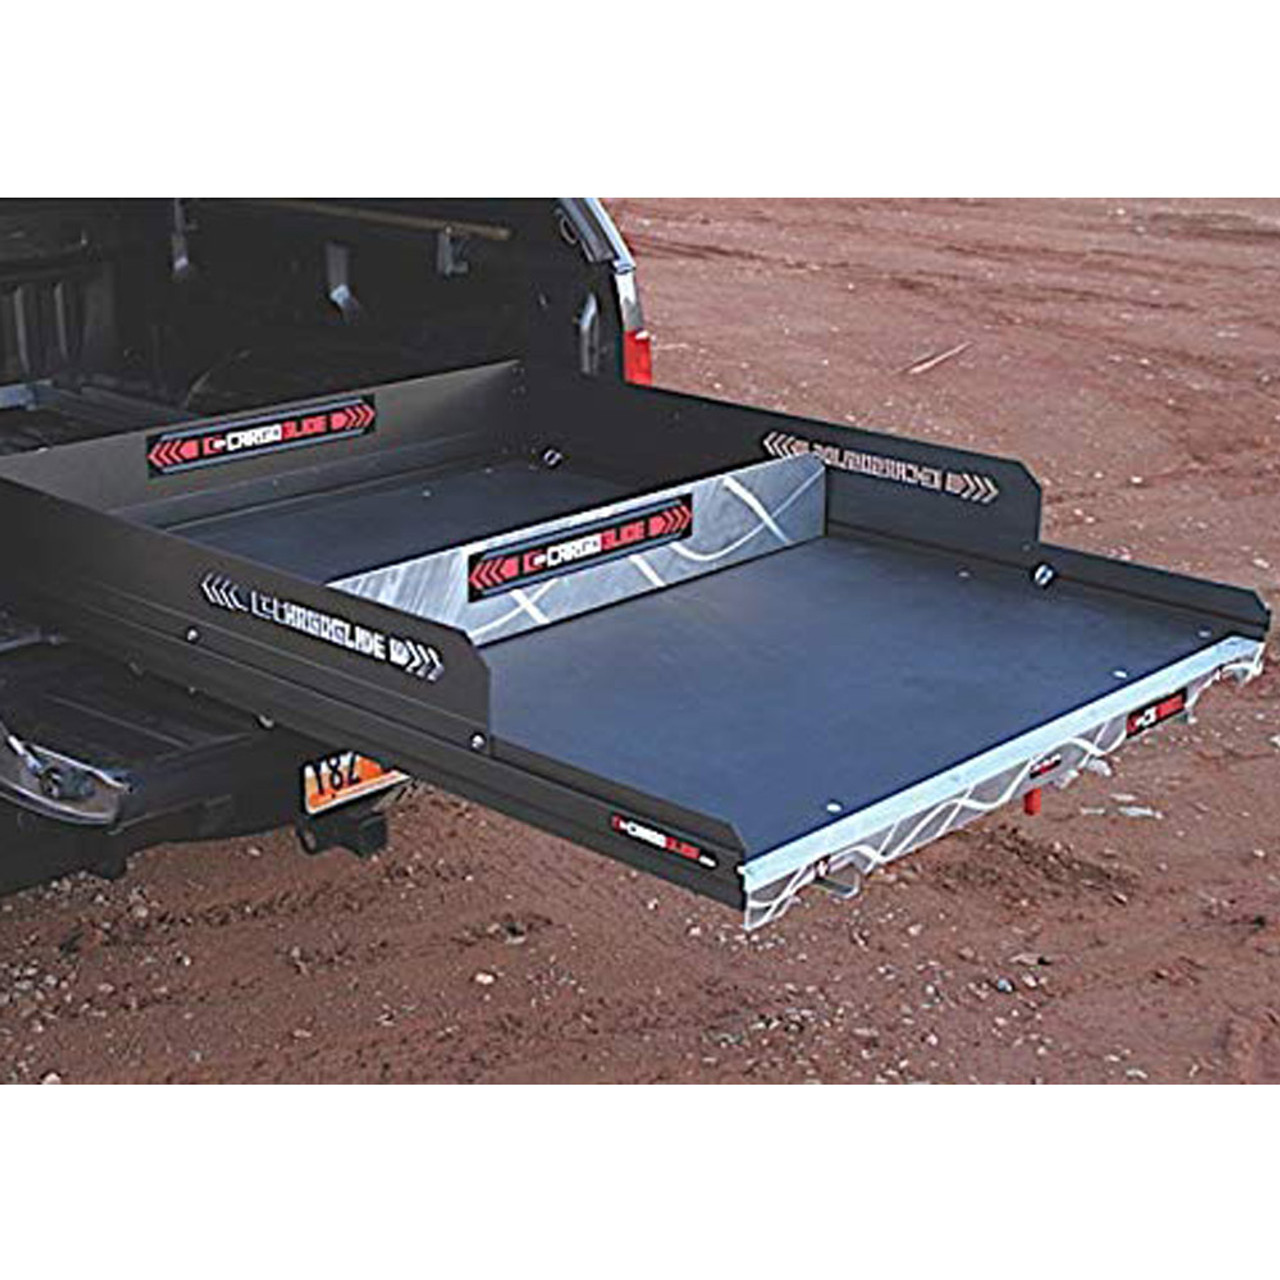 """Cargo-Glide CGCD-6 CargoDivider - 6"""" high, for 48"""", 47"""" or 41"""" wide Deck Surface, Attaches to Side Rail Tie  Down Track"""